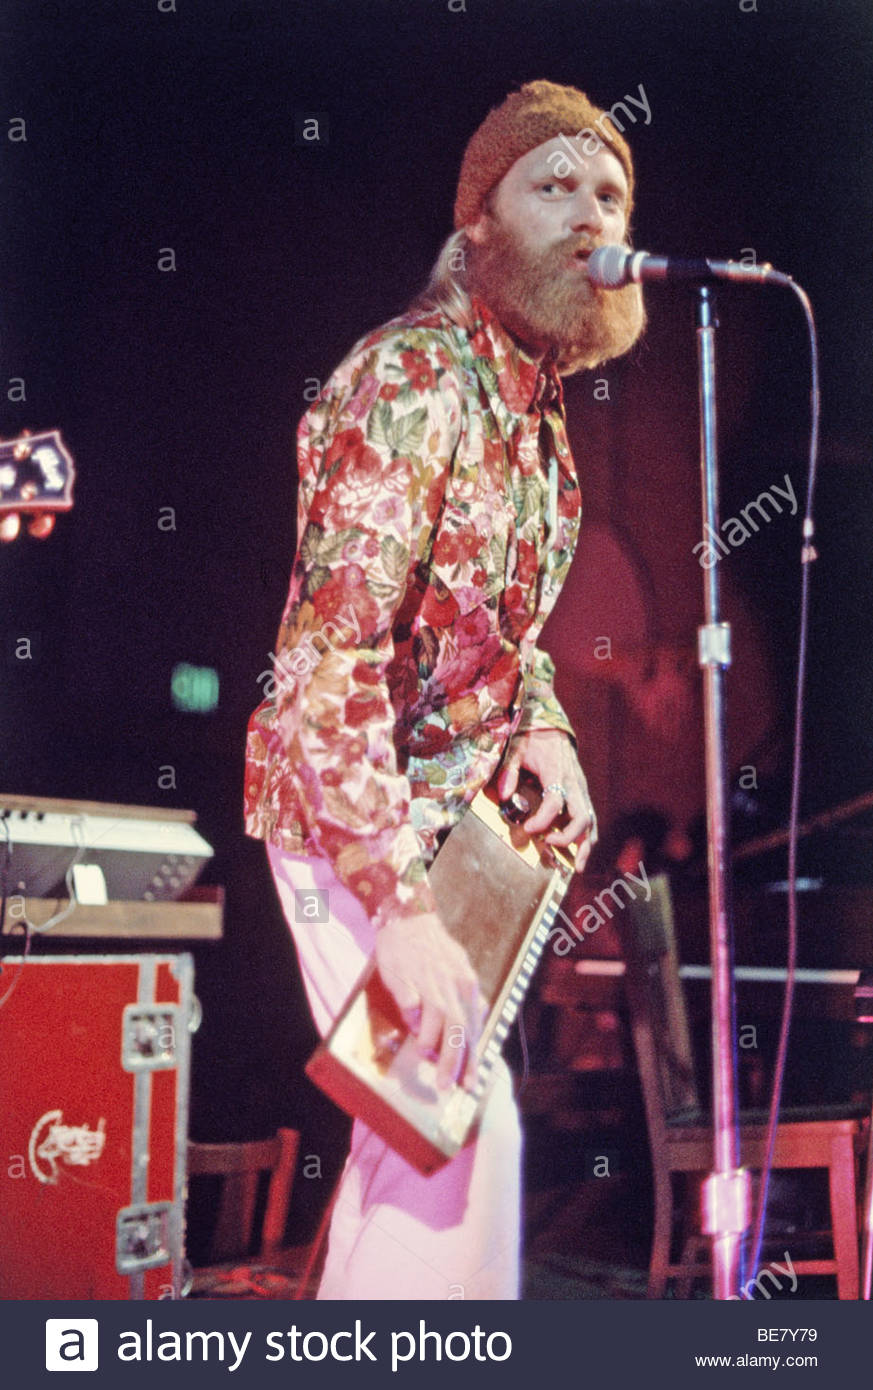 Happy Birthday to Mike Love, who turns 76 today!